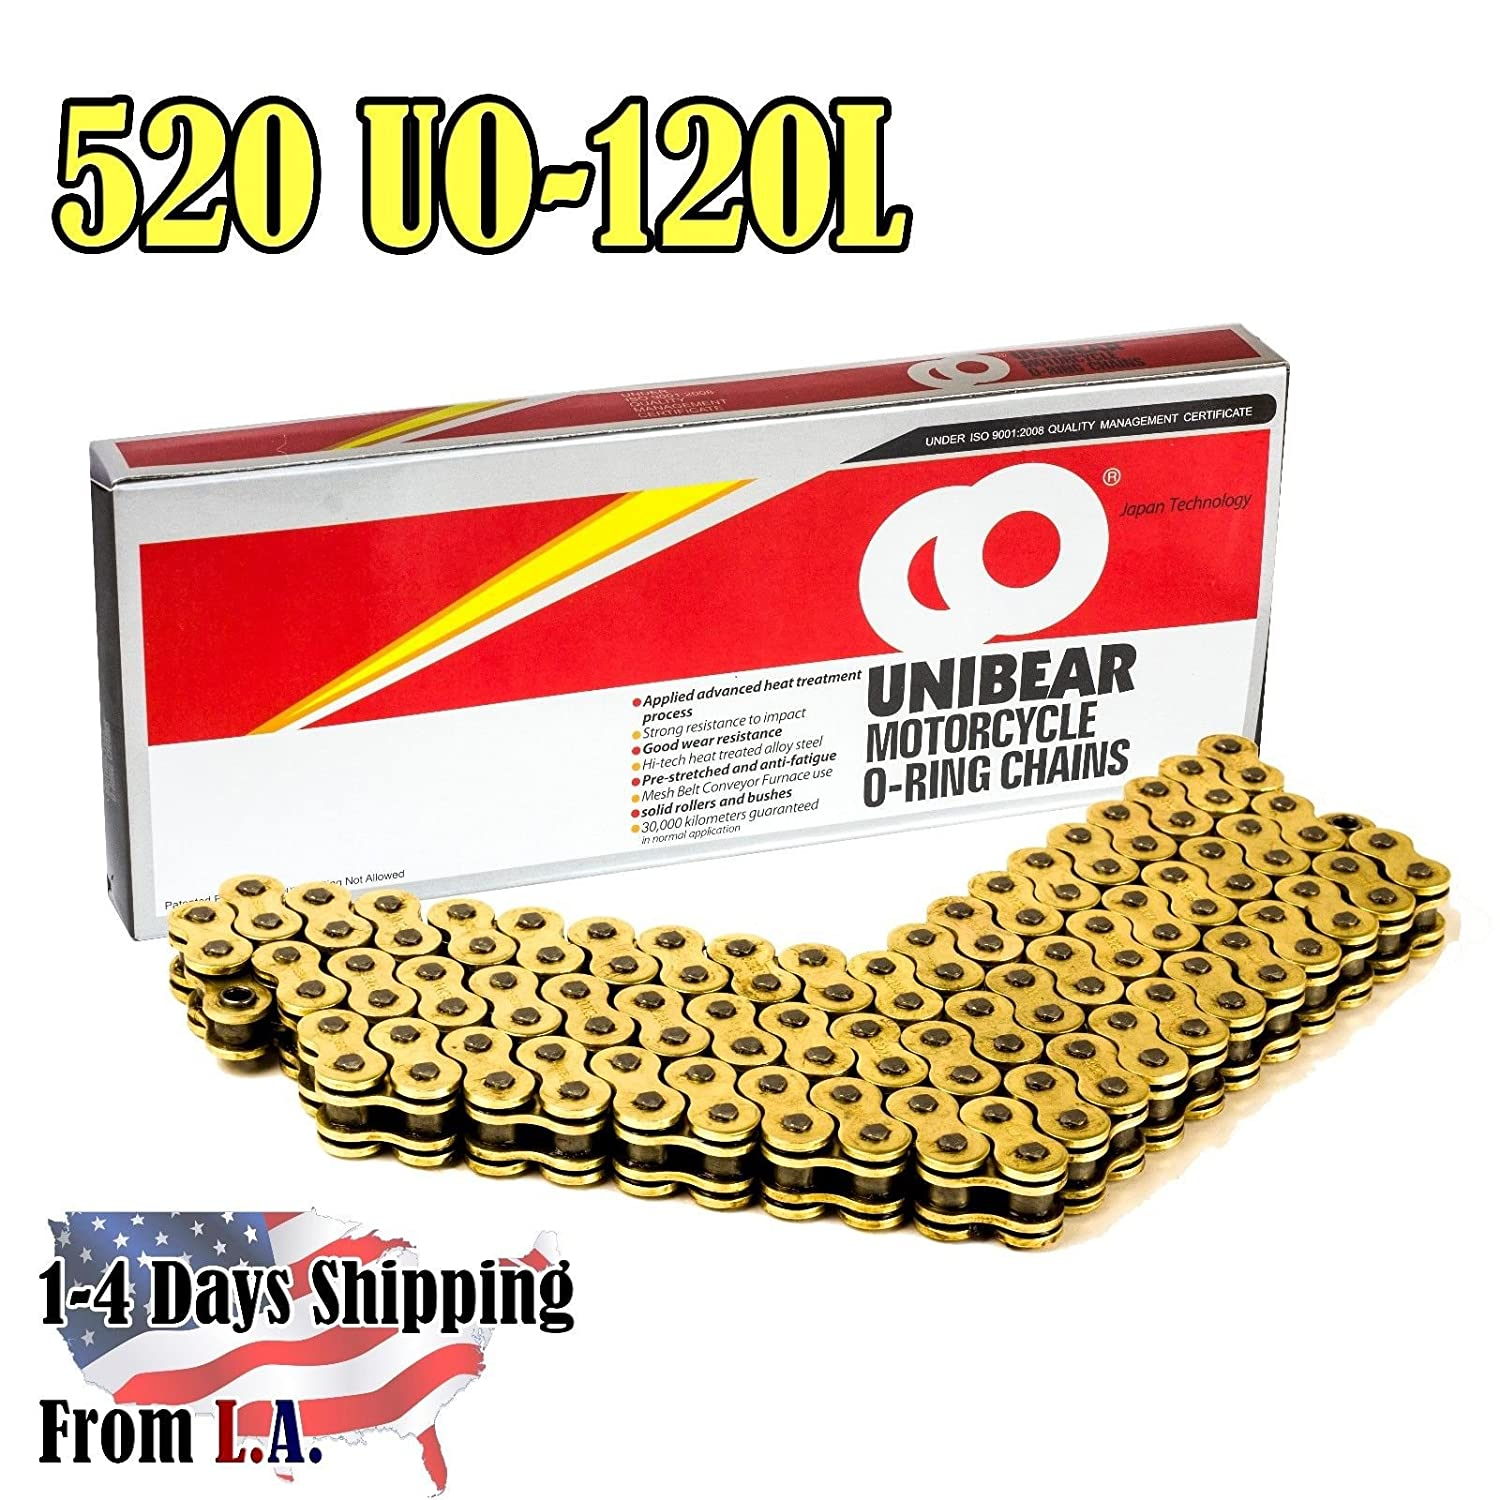 GOLD Unibear/® O-Ring 520 120 Links Motorcycle Chain With 1 Connecting Link Japan Technology